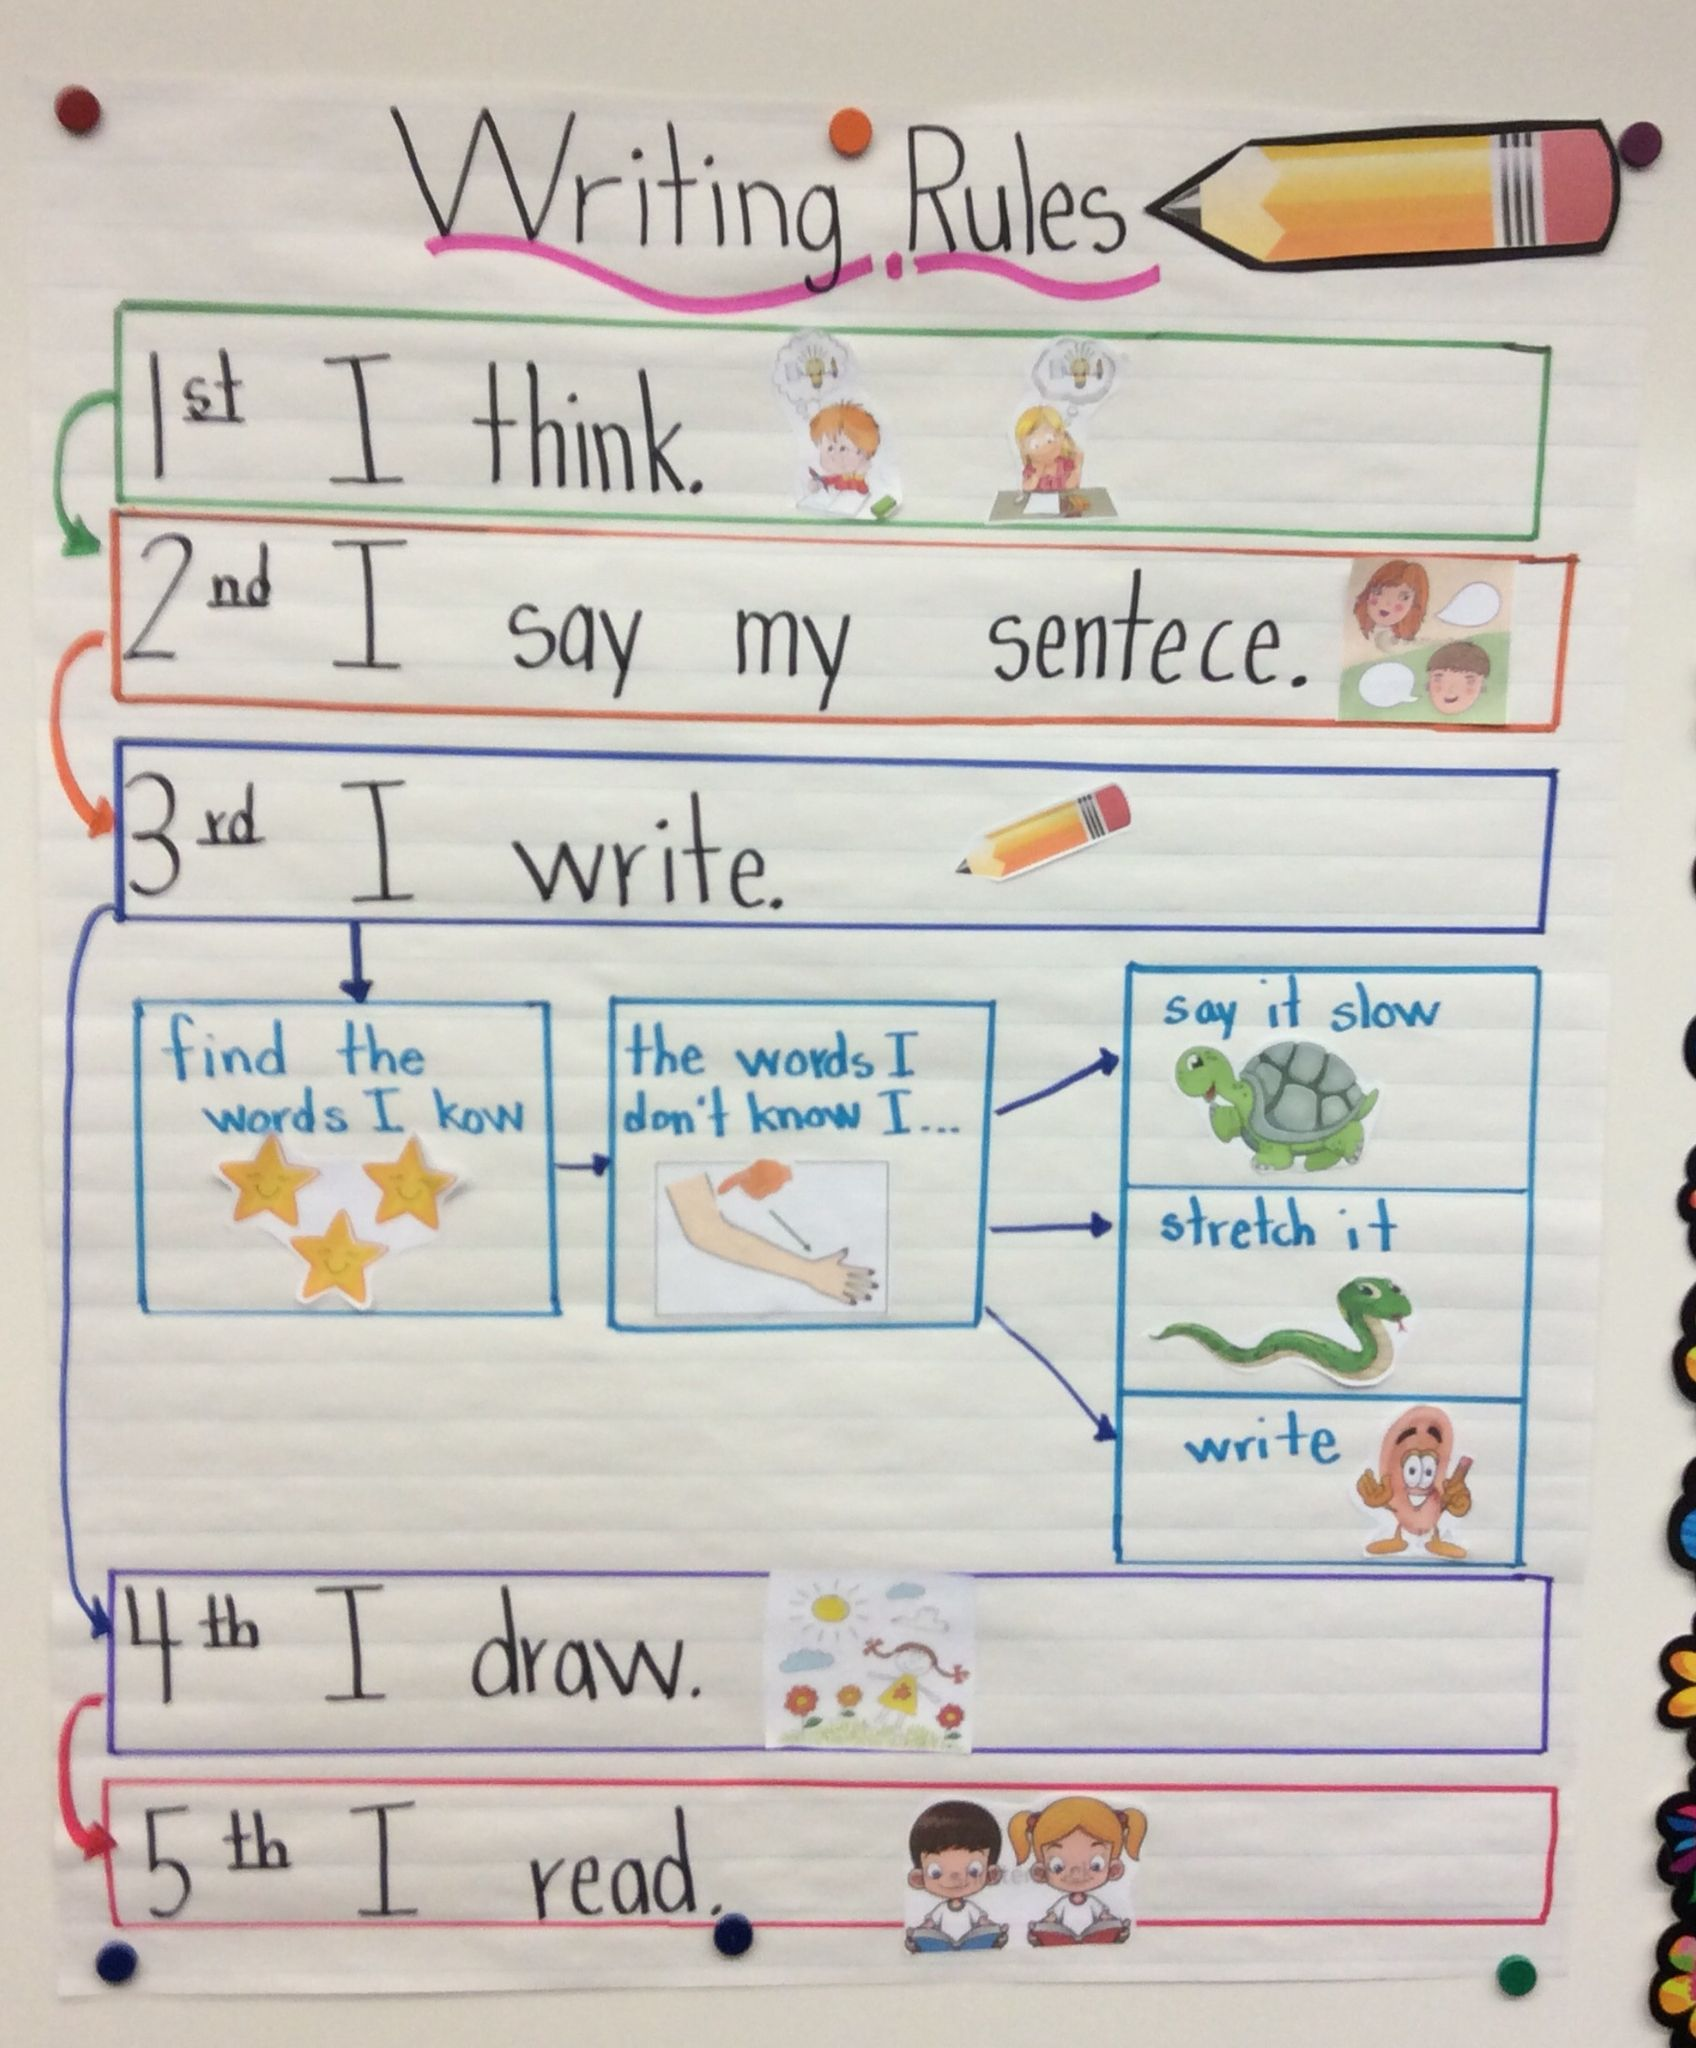 Writing Rules For Kindergarten Students